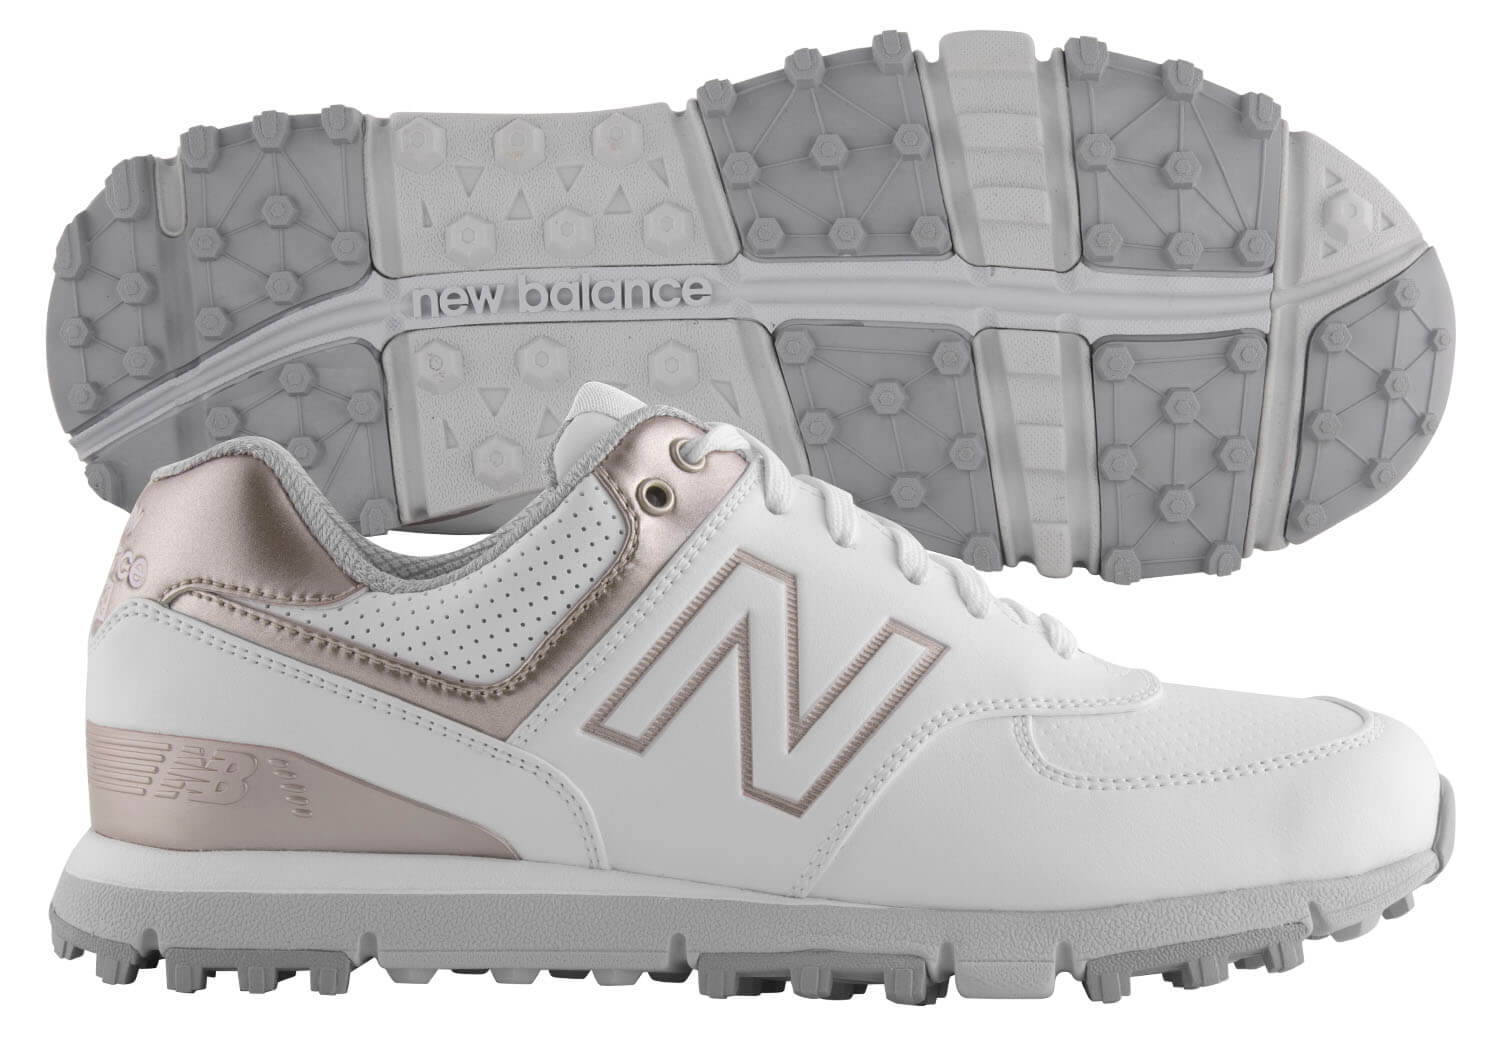 bcf230aceadc4 Details about New Balance Women s 574 SL Golf Shoes NBGW574WRG White Rose  Gold Ladies New